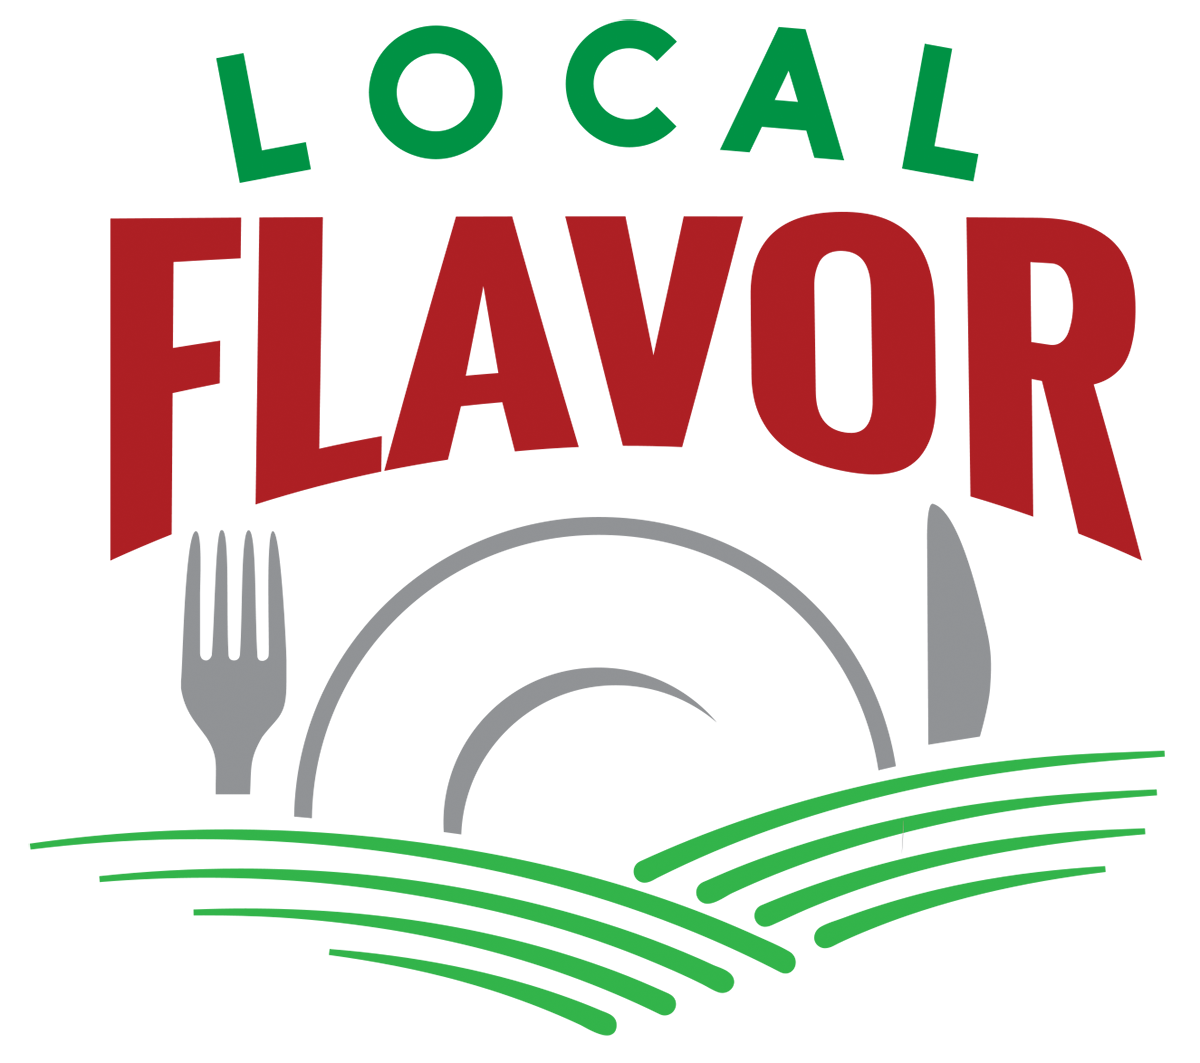 Farming clipart local food. Flavor mississippi state university